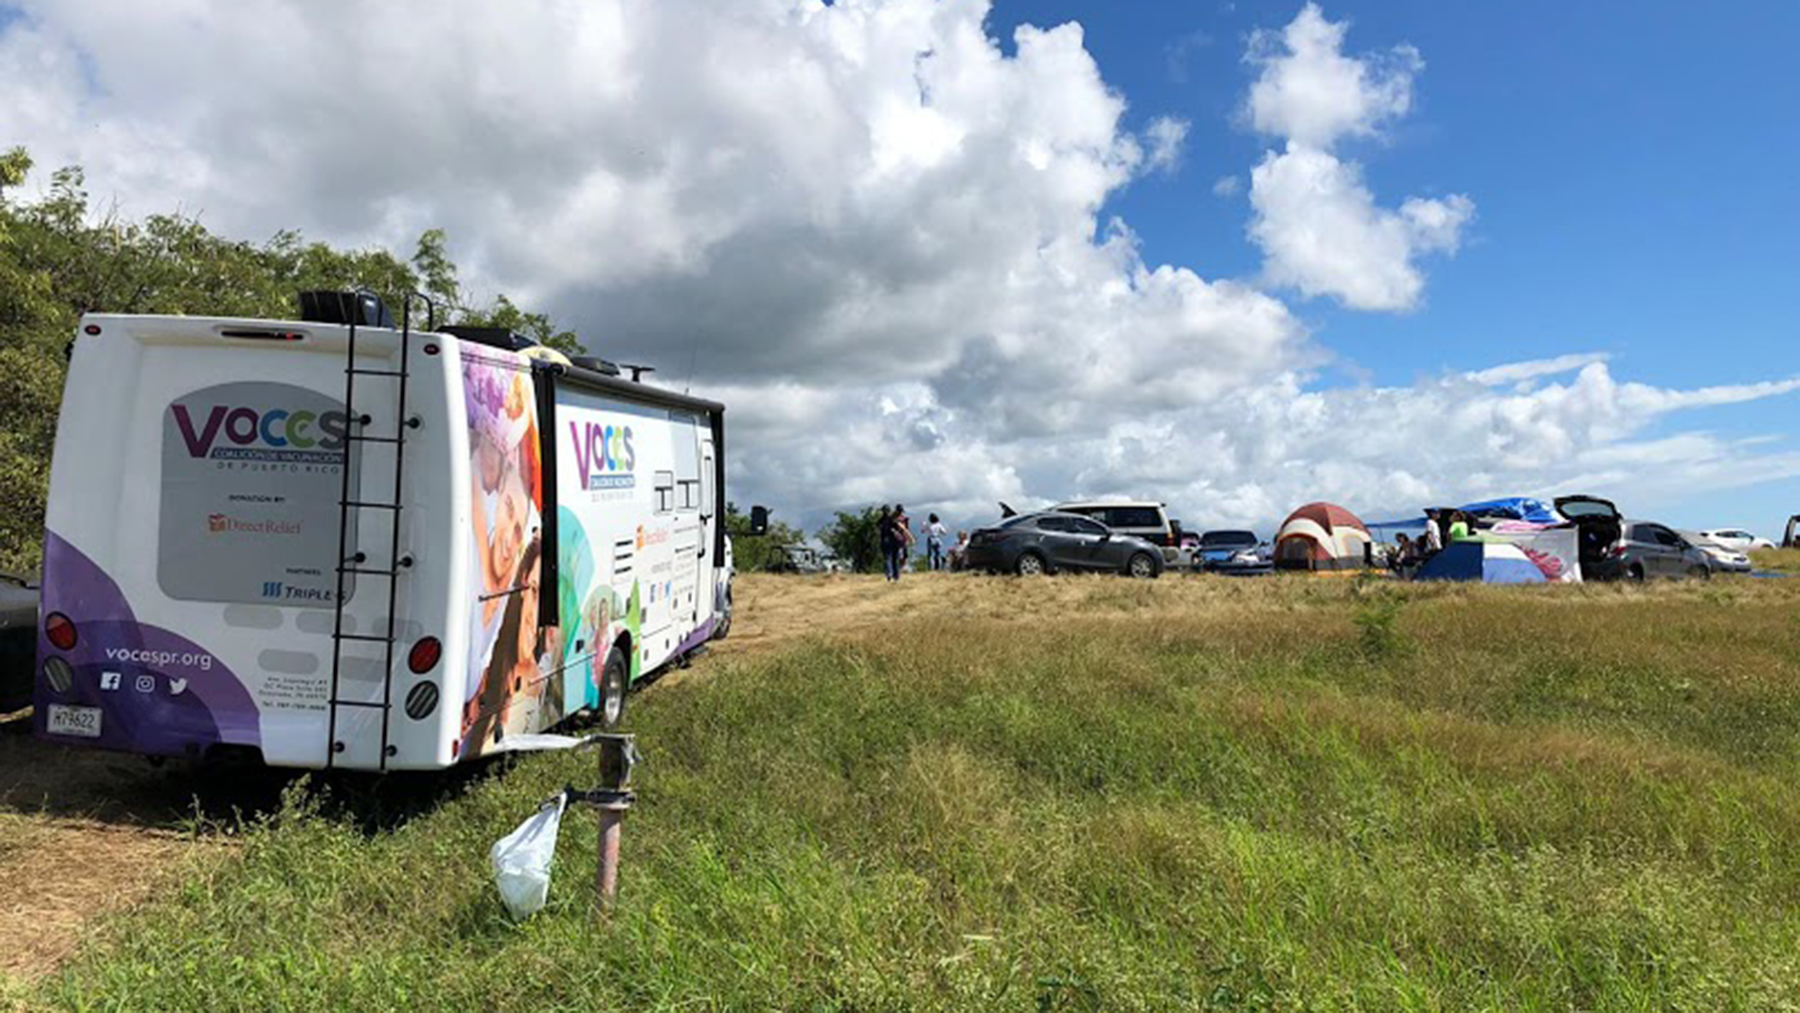 A mobile clinic from the organization VOCES positioned at the Los Indios camp in Guayanilla, Puerto Rico. Evacuees lived at the camp for more than two weeks, working together and receiving care at a mobile health outpost organized by Direct Relief. (Direct Relief photo)